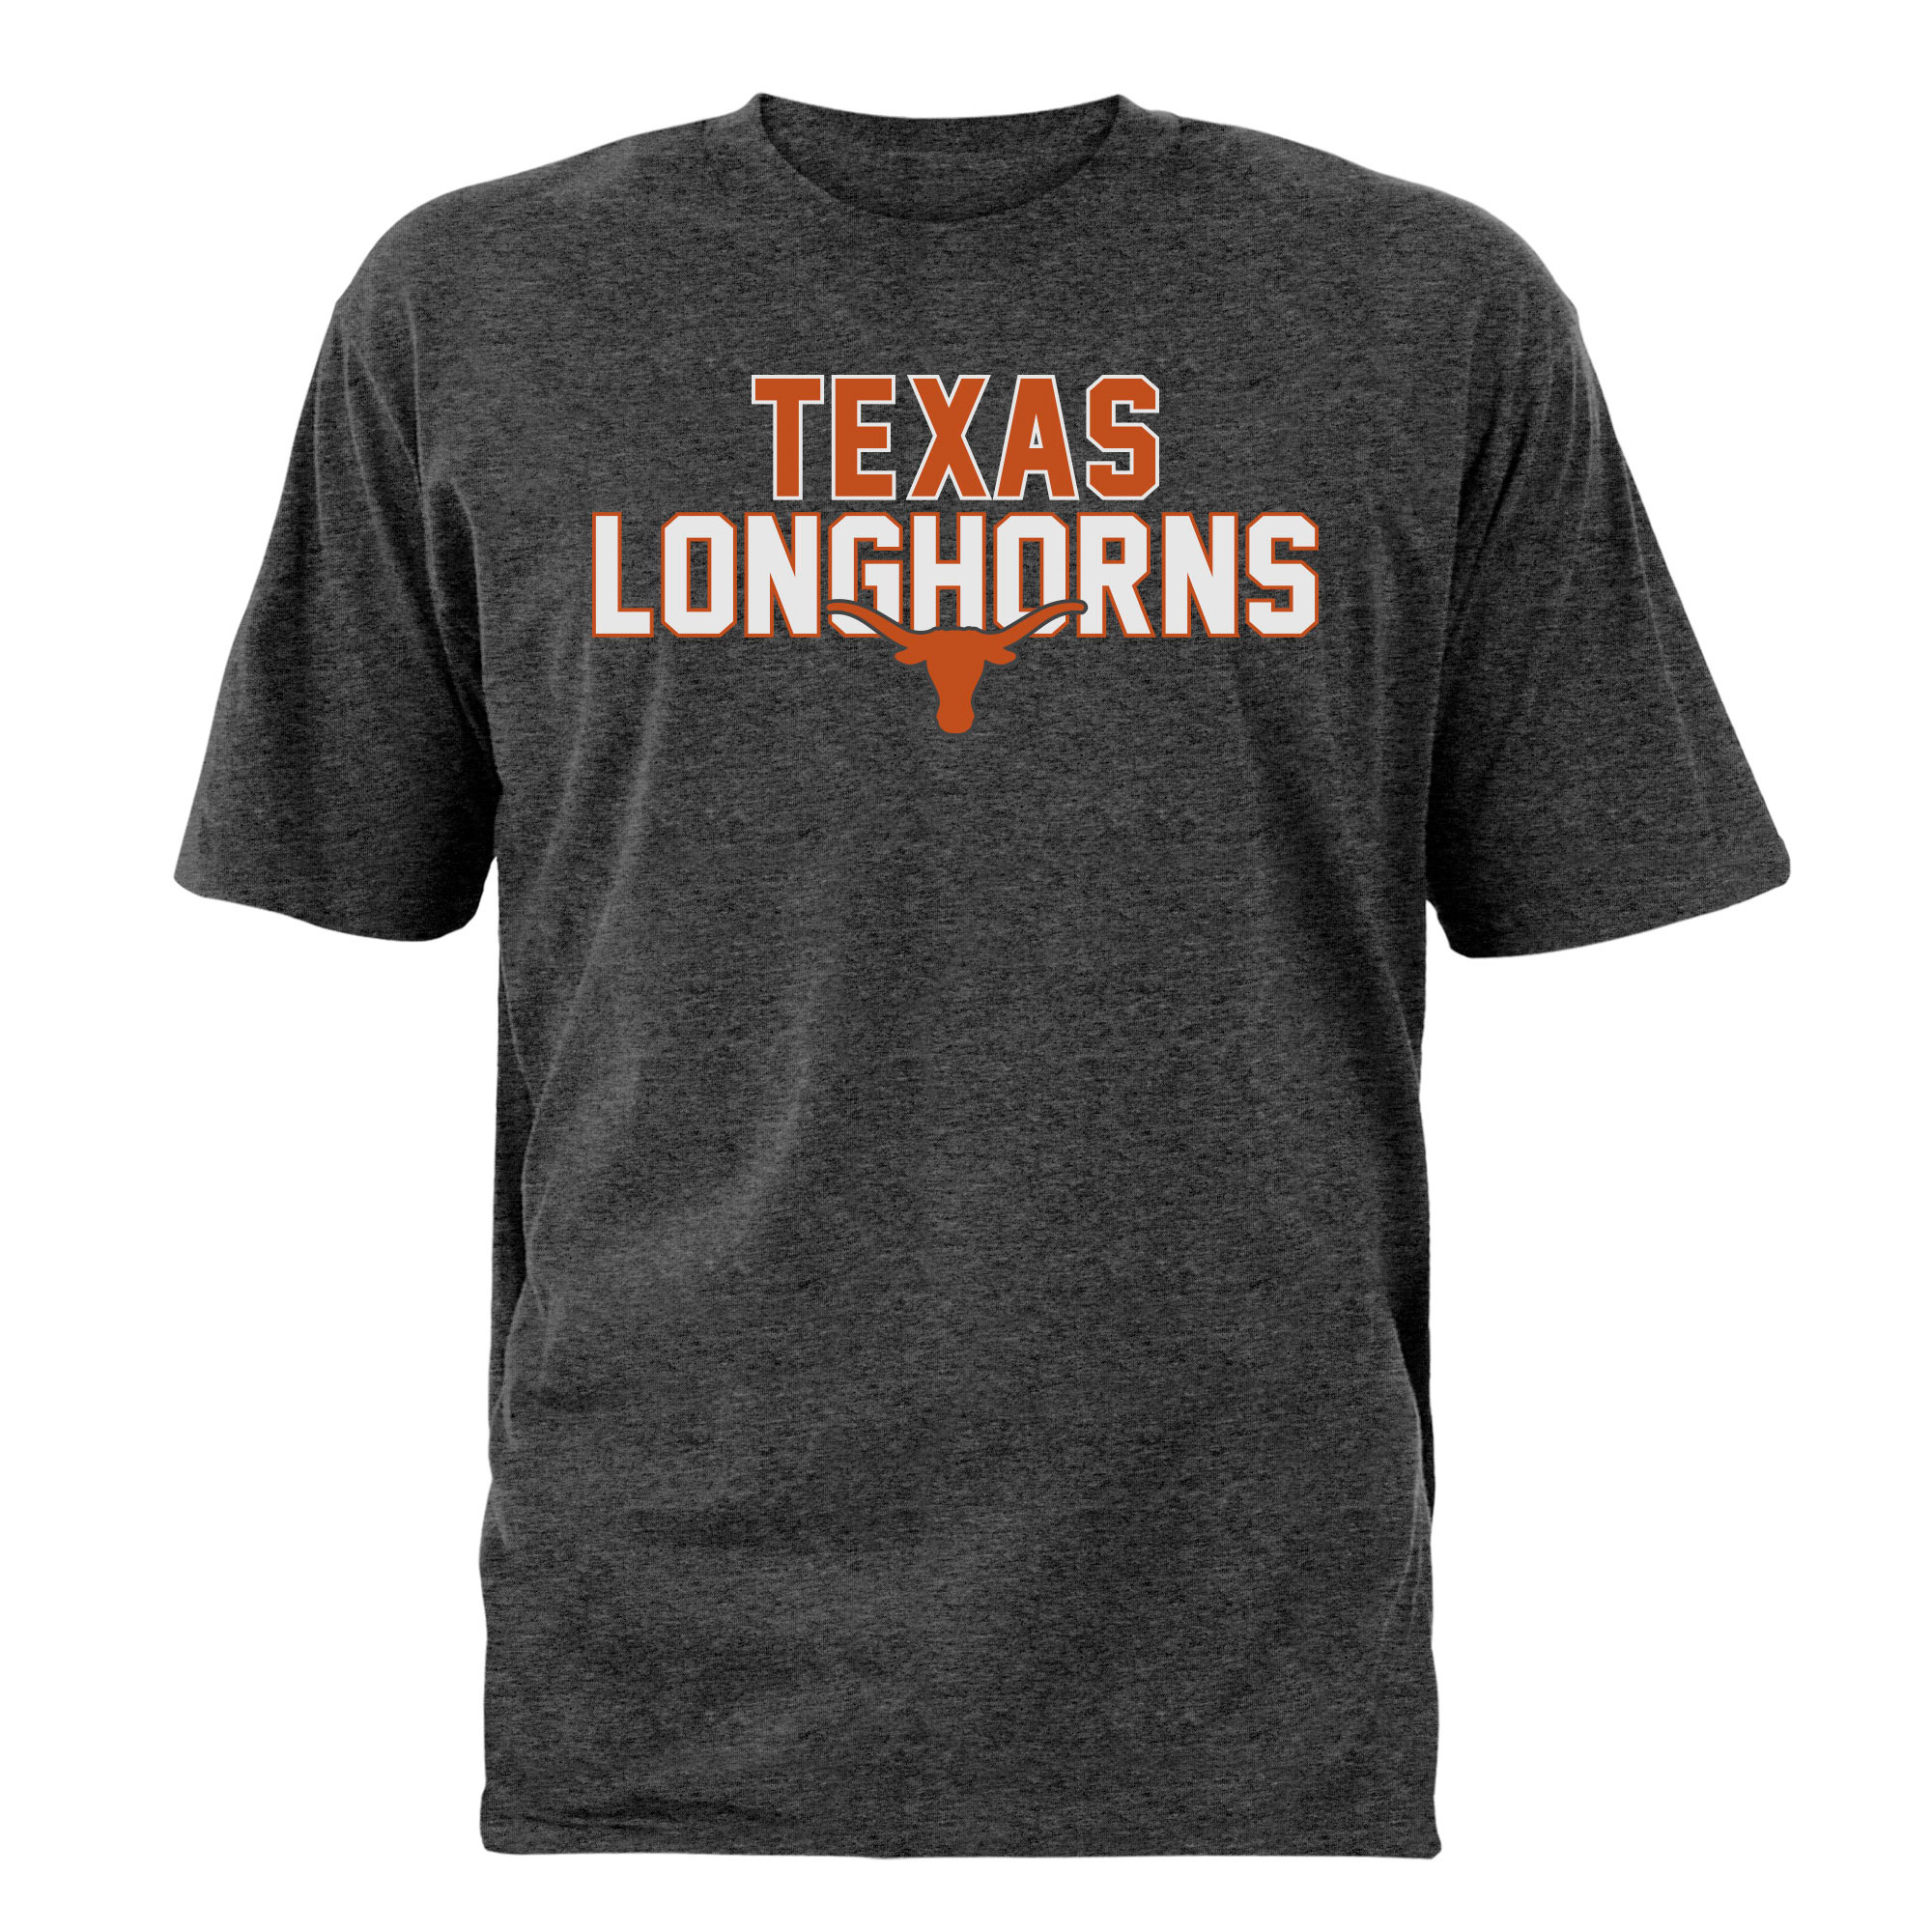 Men's Heathered Charcoal Texas Longhorns Razor T-Shirt